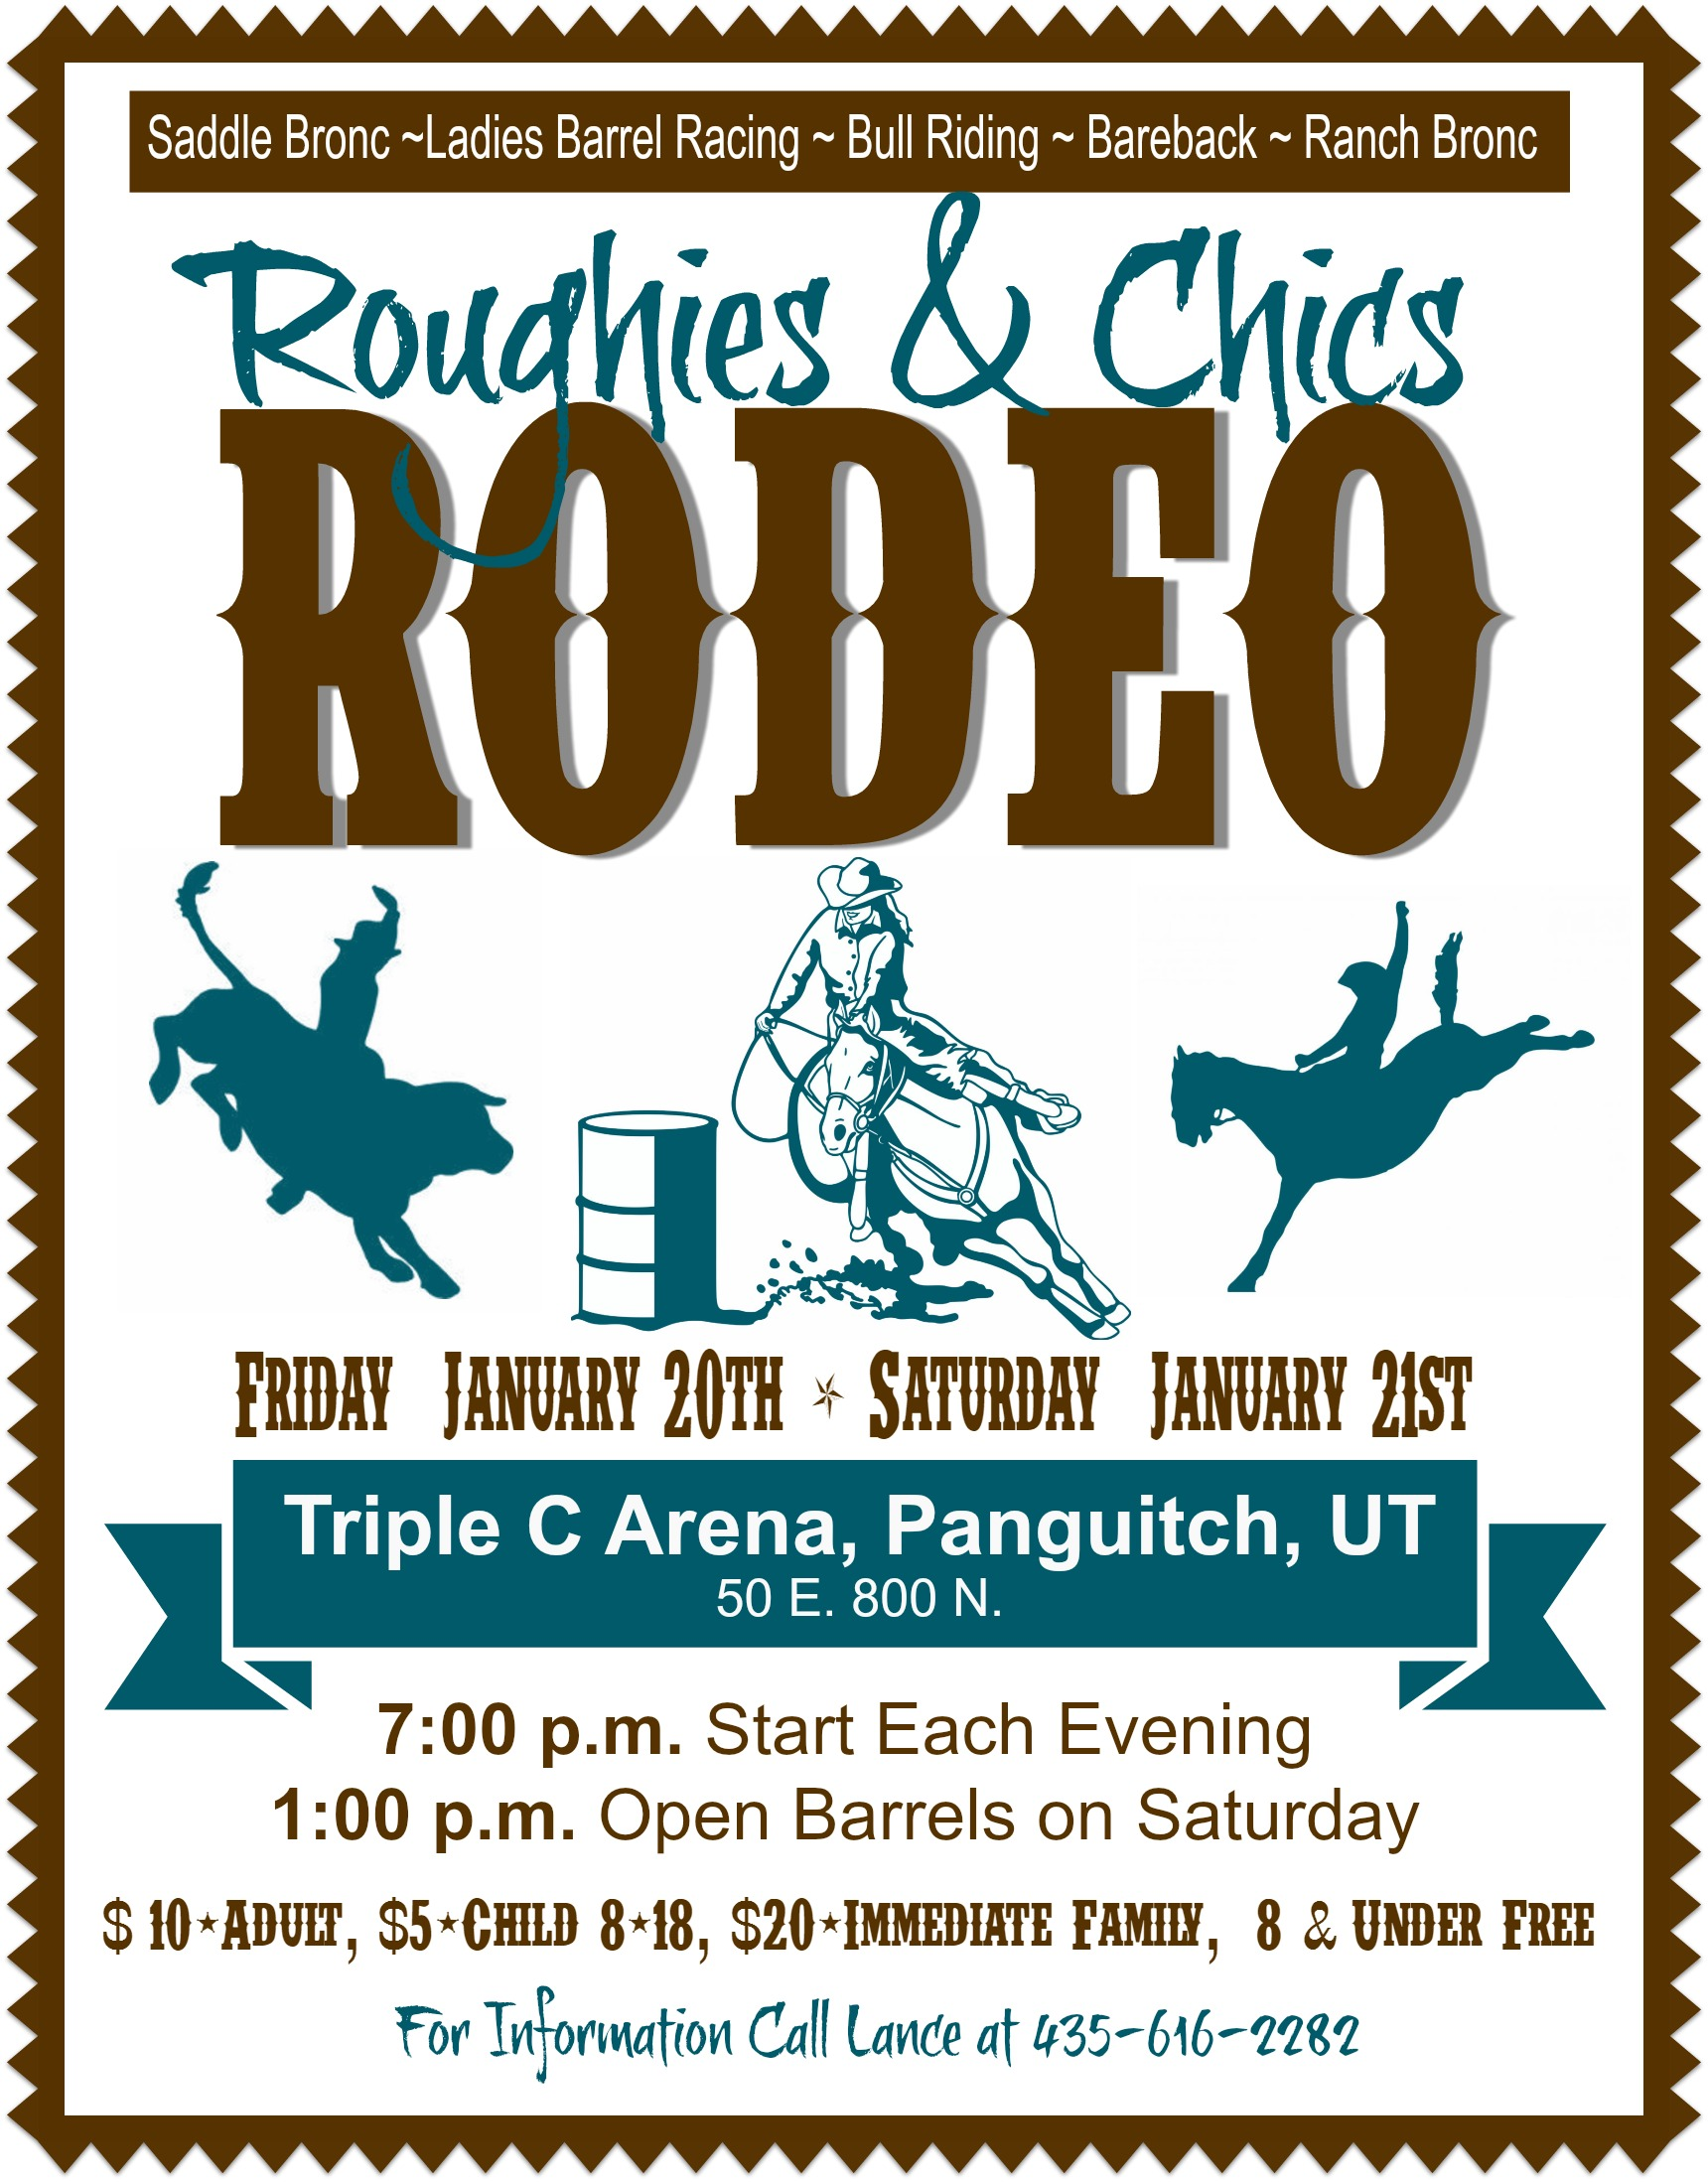 Roughies and Chics Rodeo @ Triple C Arena | Saint George | Utah | United States